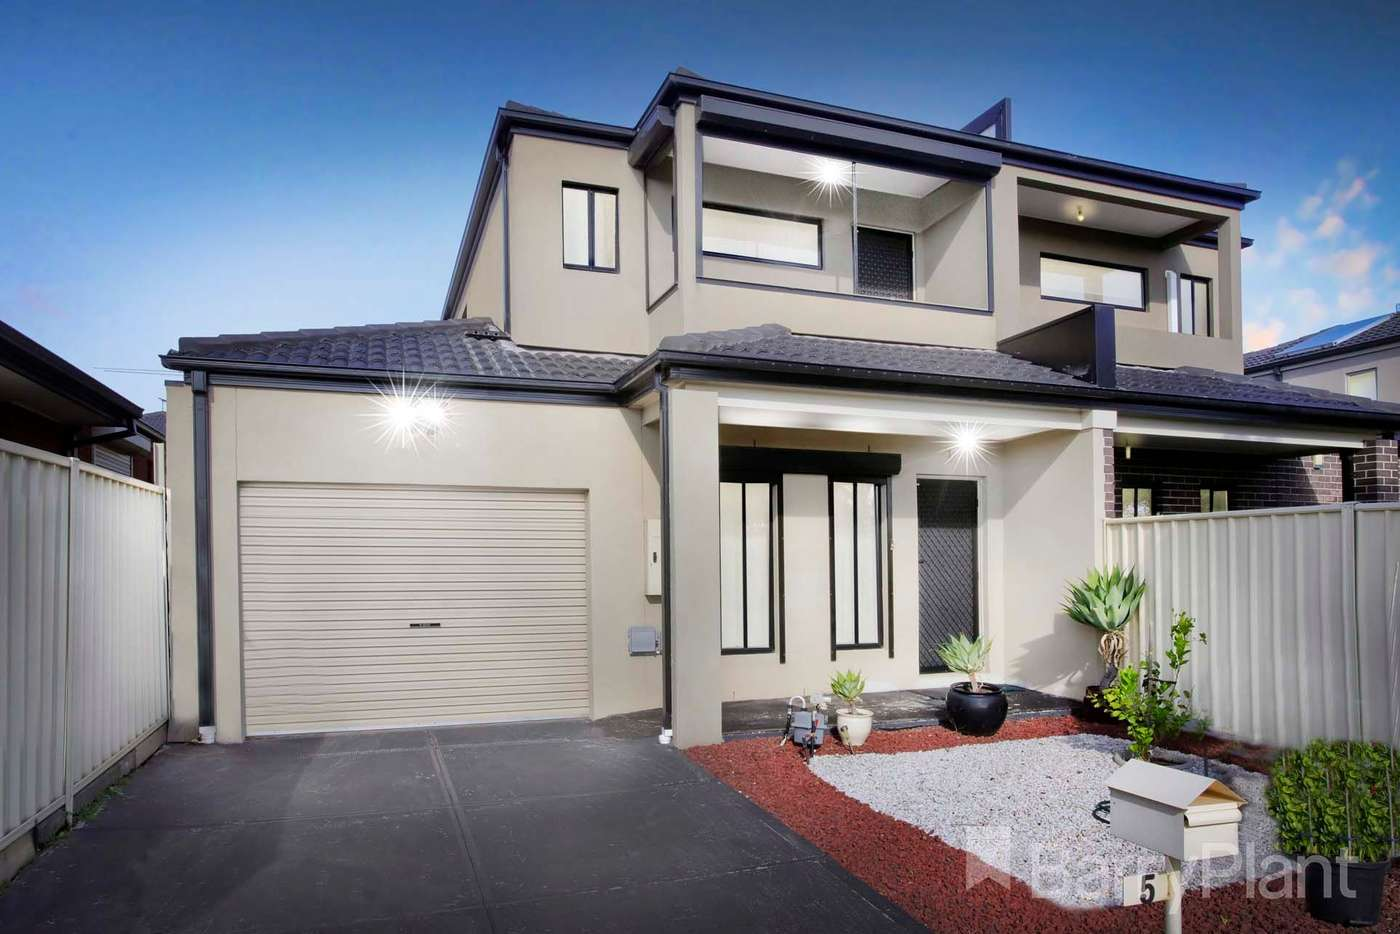 Main view of Homely house listing, 5 Federation Way, Sunshine West VIC 3020